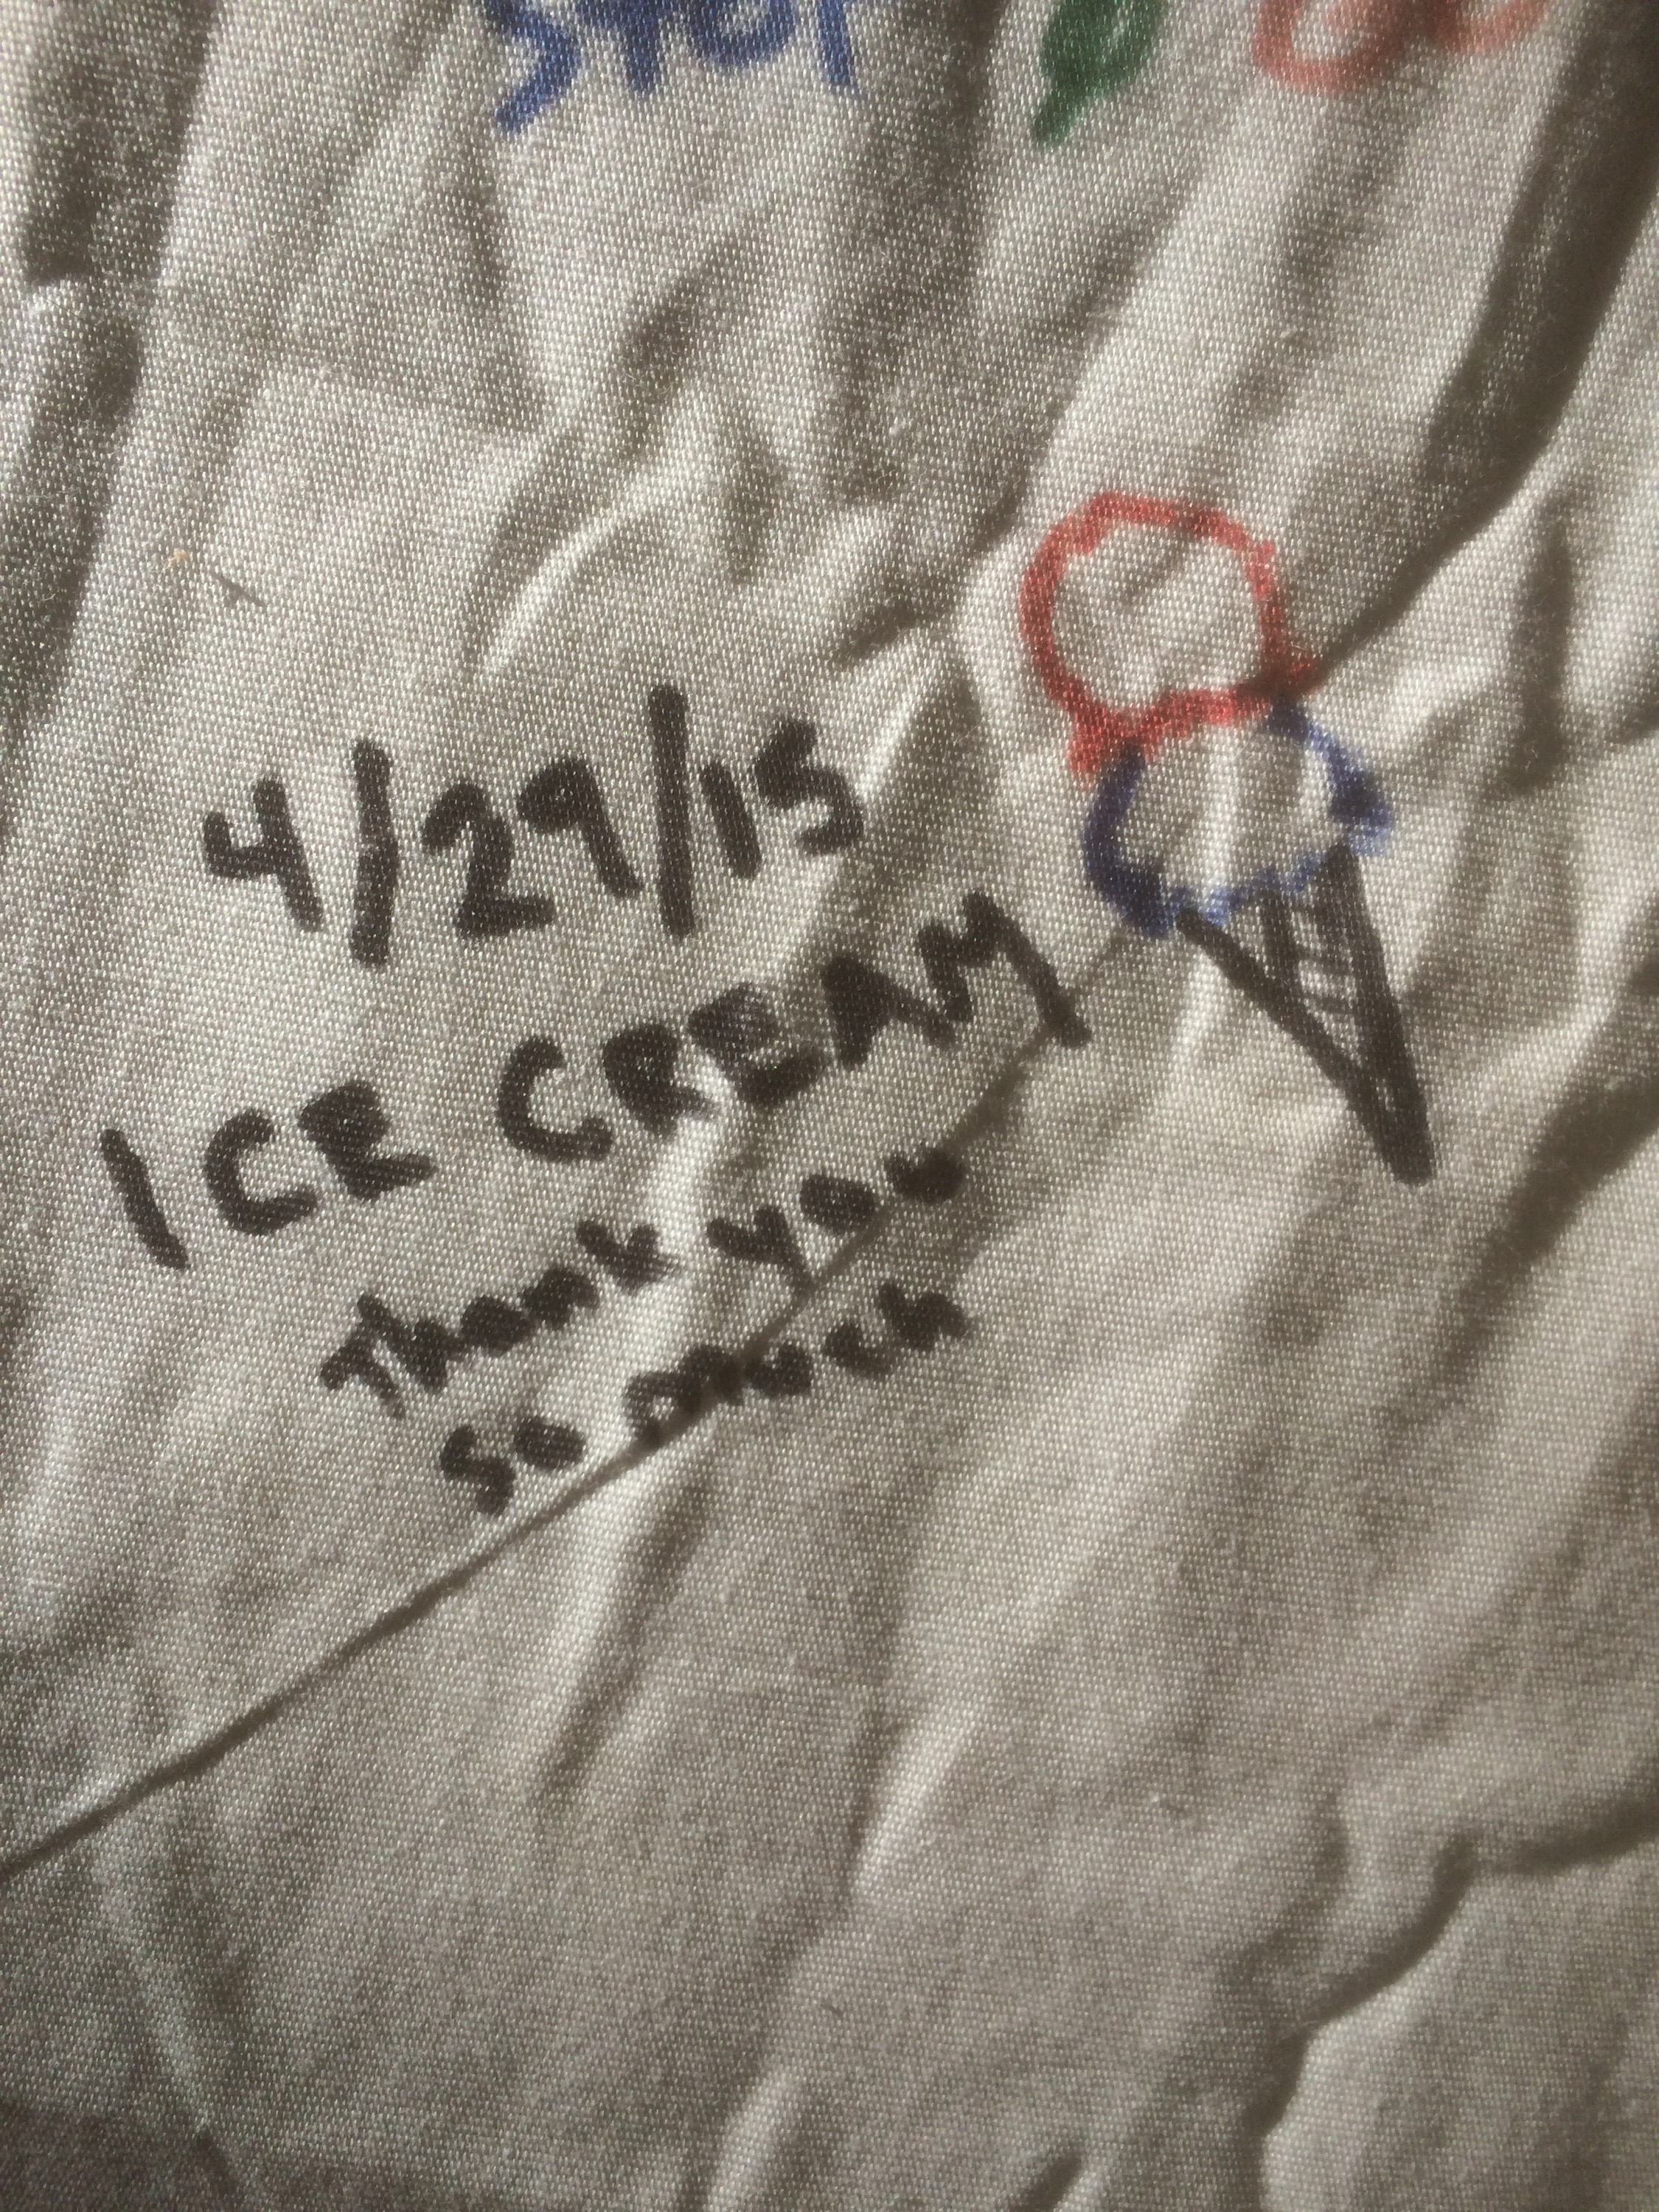 ice cream's signature at casa de luna